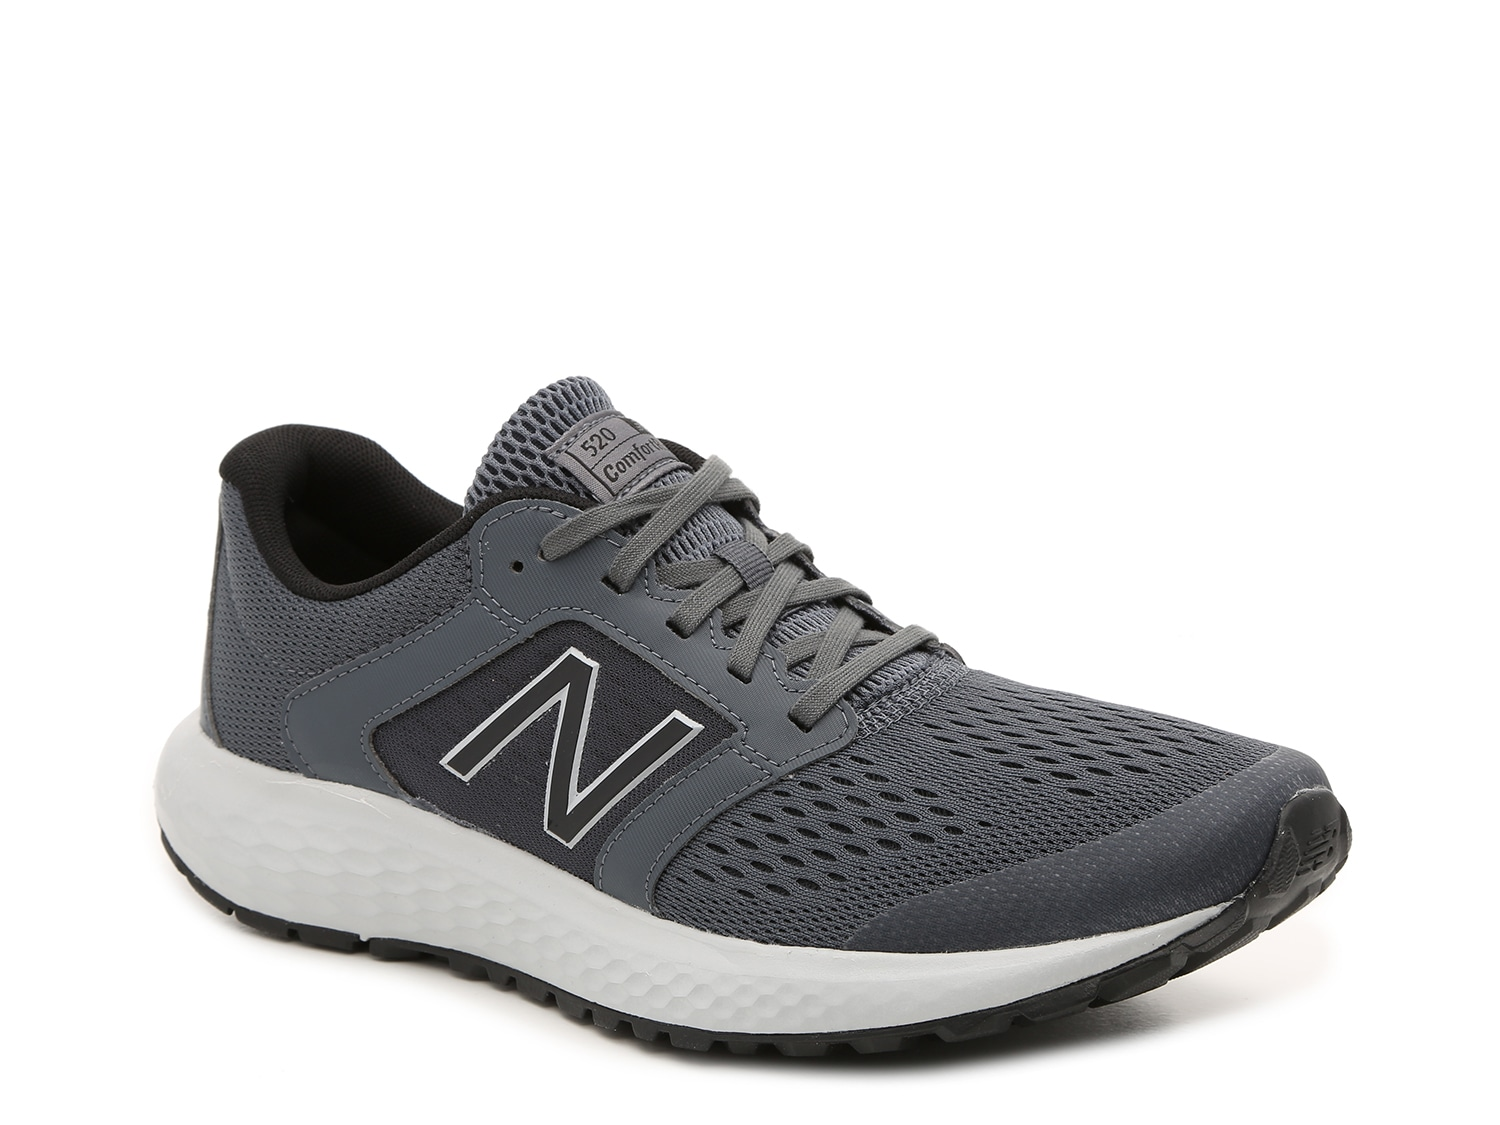 malla Interactuar padre  New Balance 520 ComfortRide Lightweight Running Shoe - Men's Men's Shoes |  DSW